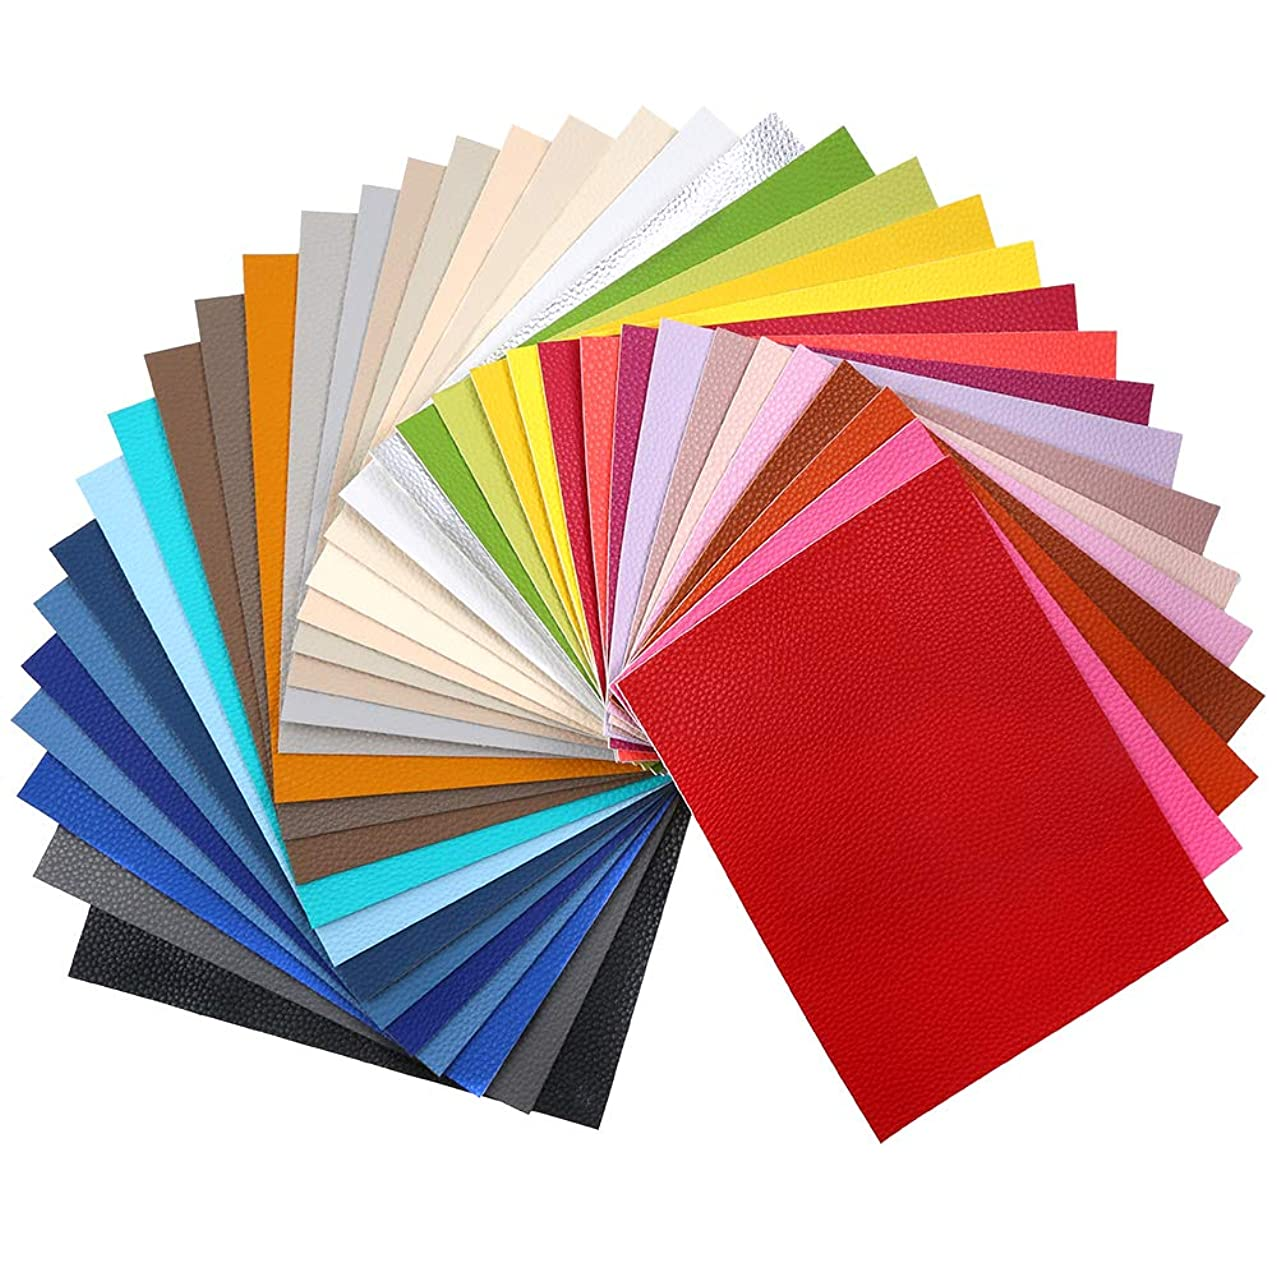 "Sntieecr 36 Pieces Assorted Colors PU Leather Fabric Sheets, Litchi Fabric Cotton Back 8.3"" x 6.3"" (21cm x 16cm) for Making Bags, Hair Bow, Craft Sewing"